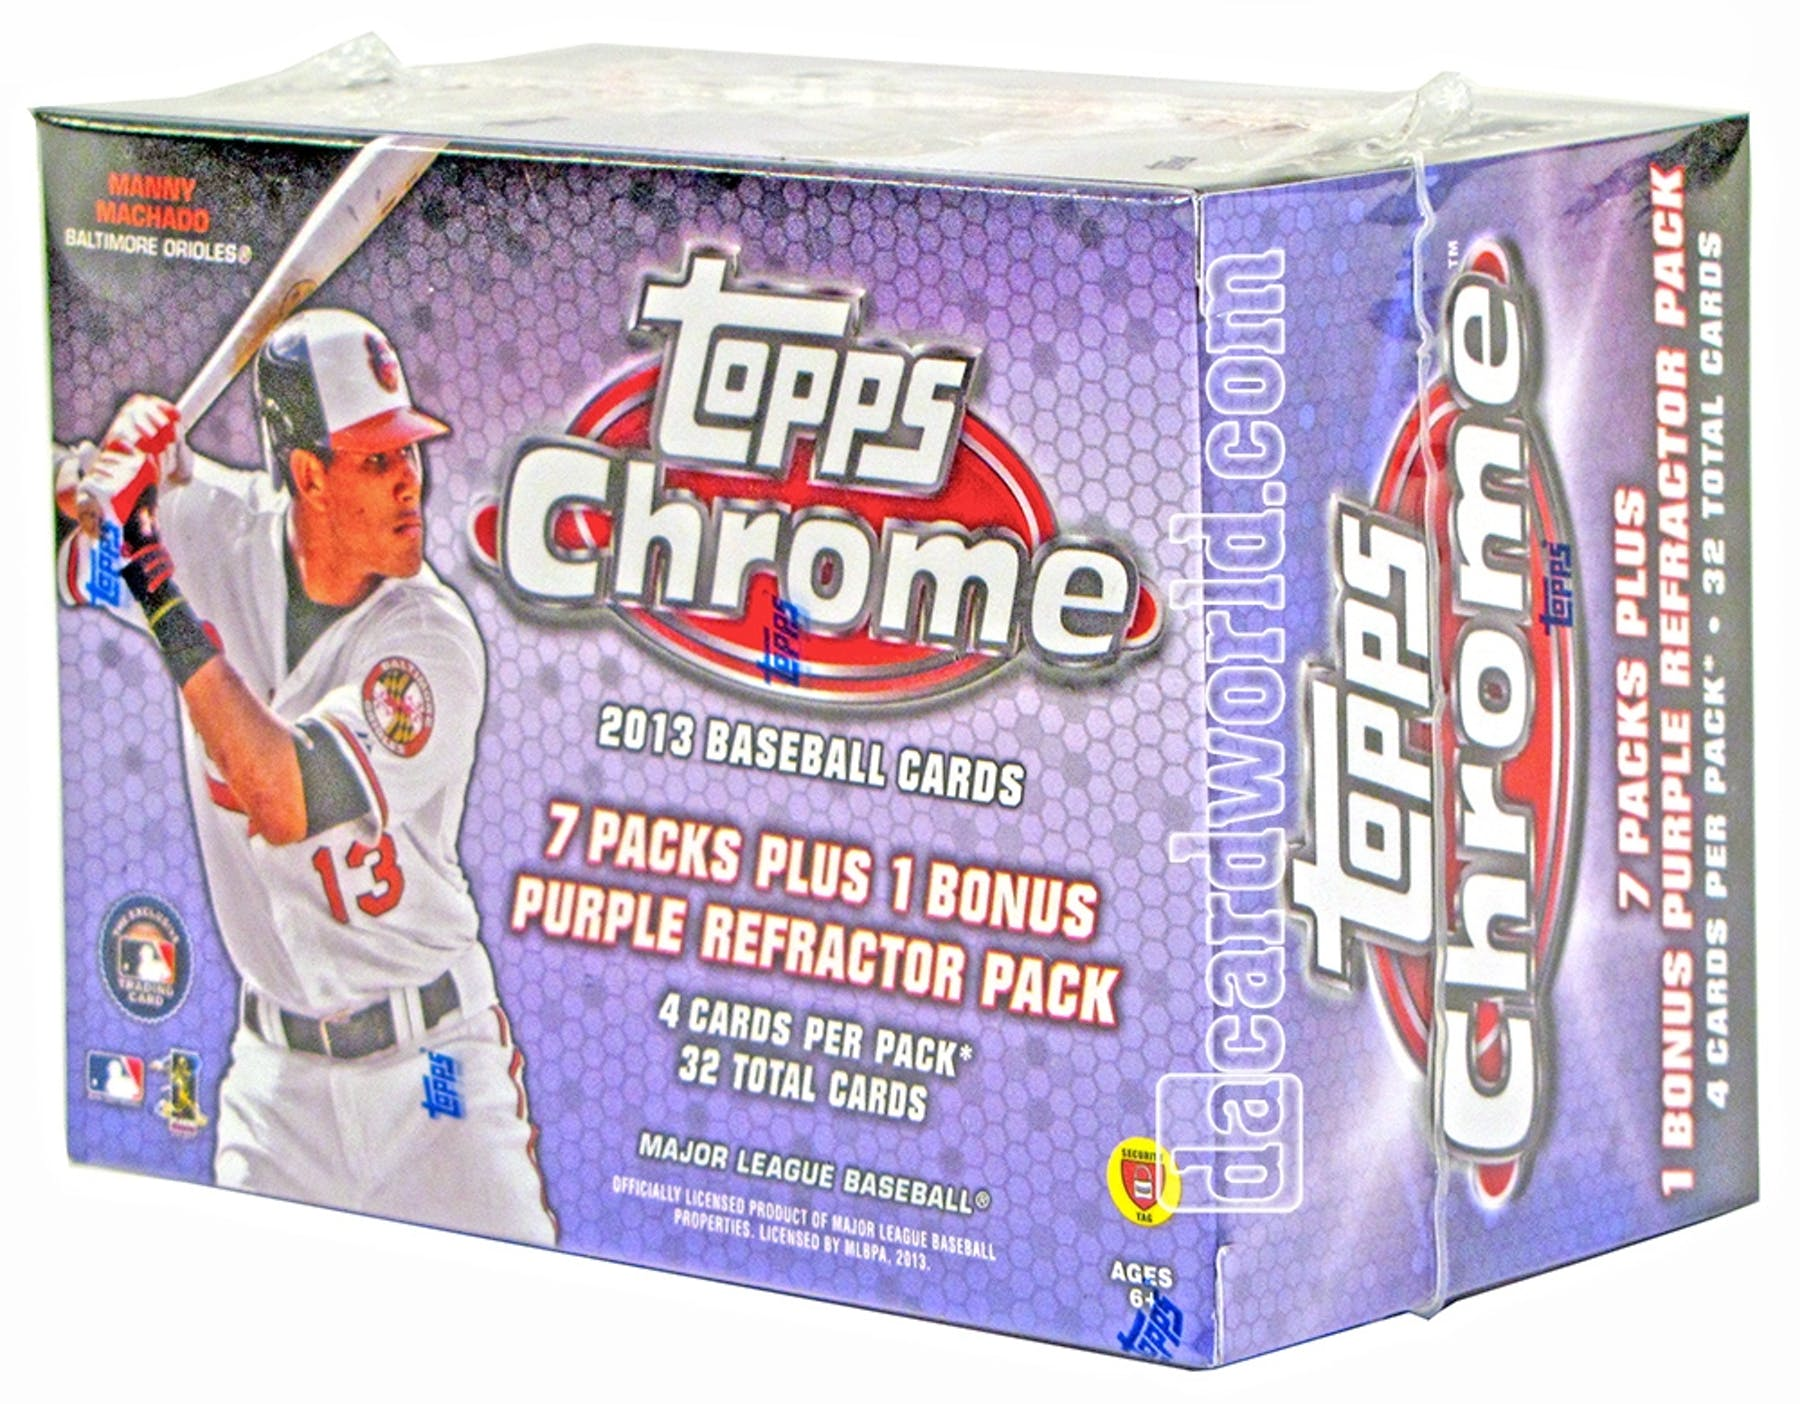 2013 topps chrome baseball 8 pack box one bonus 4 card for 2 box auto con stanza bonus